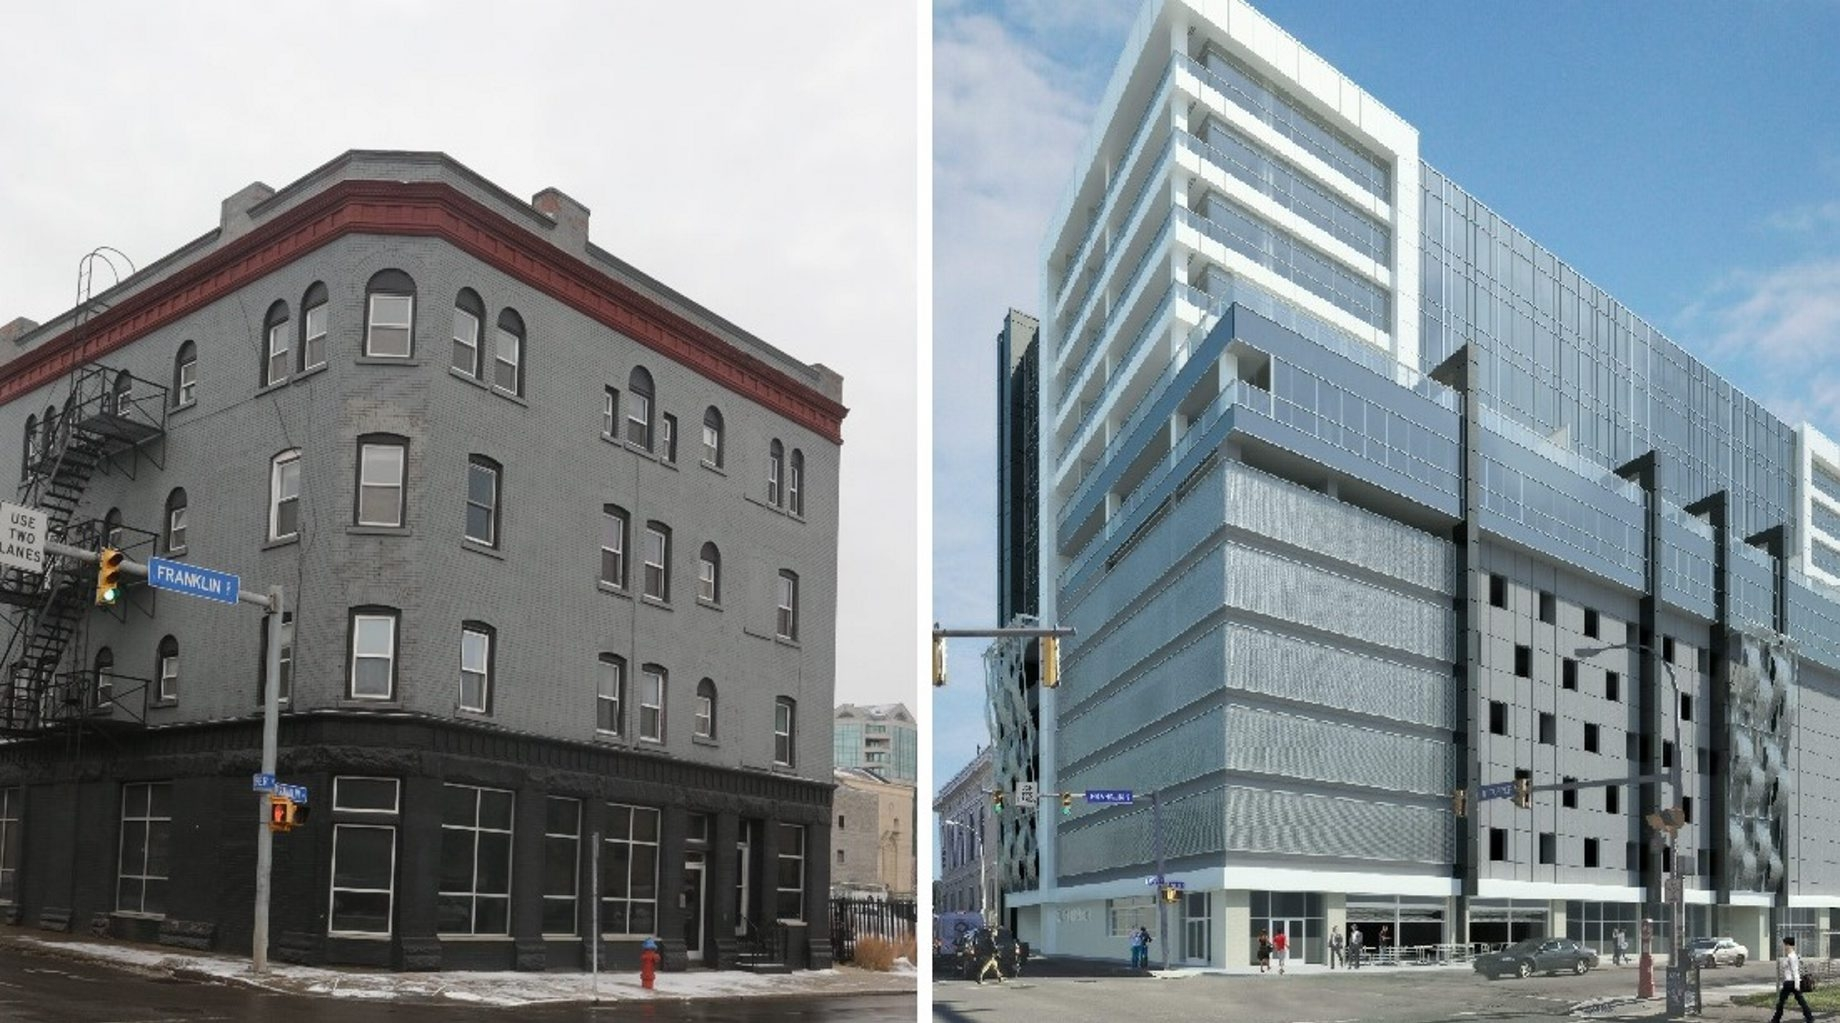 A rendering shows the $70 million hotel, apartment and retail complex proposed by Ellicott Development for the site where the Bachelor Apartment building now stands.